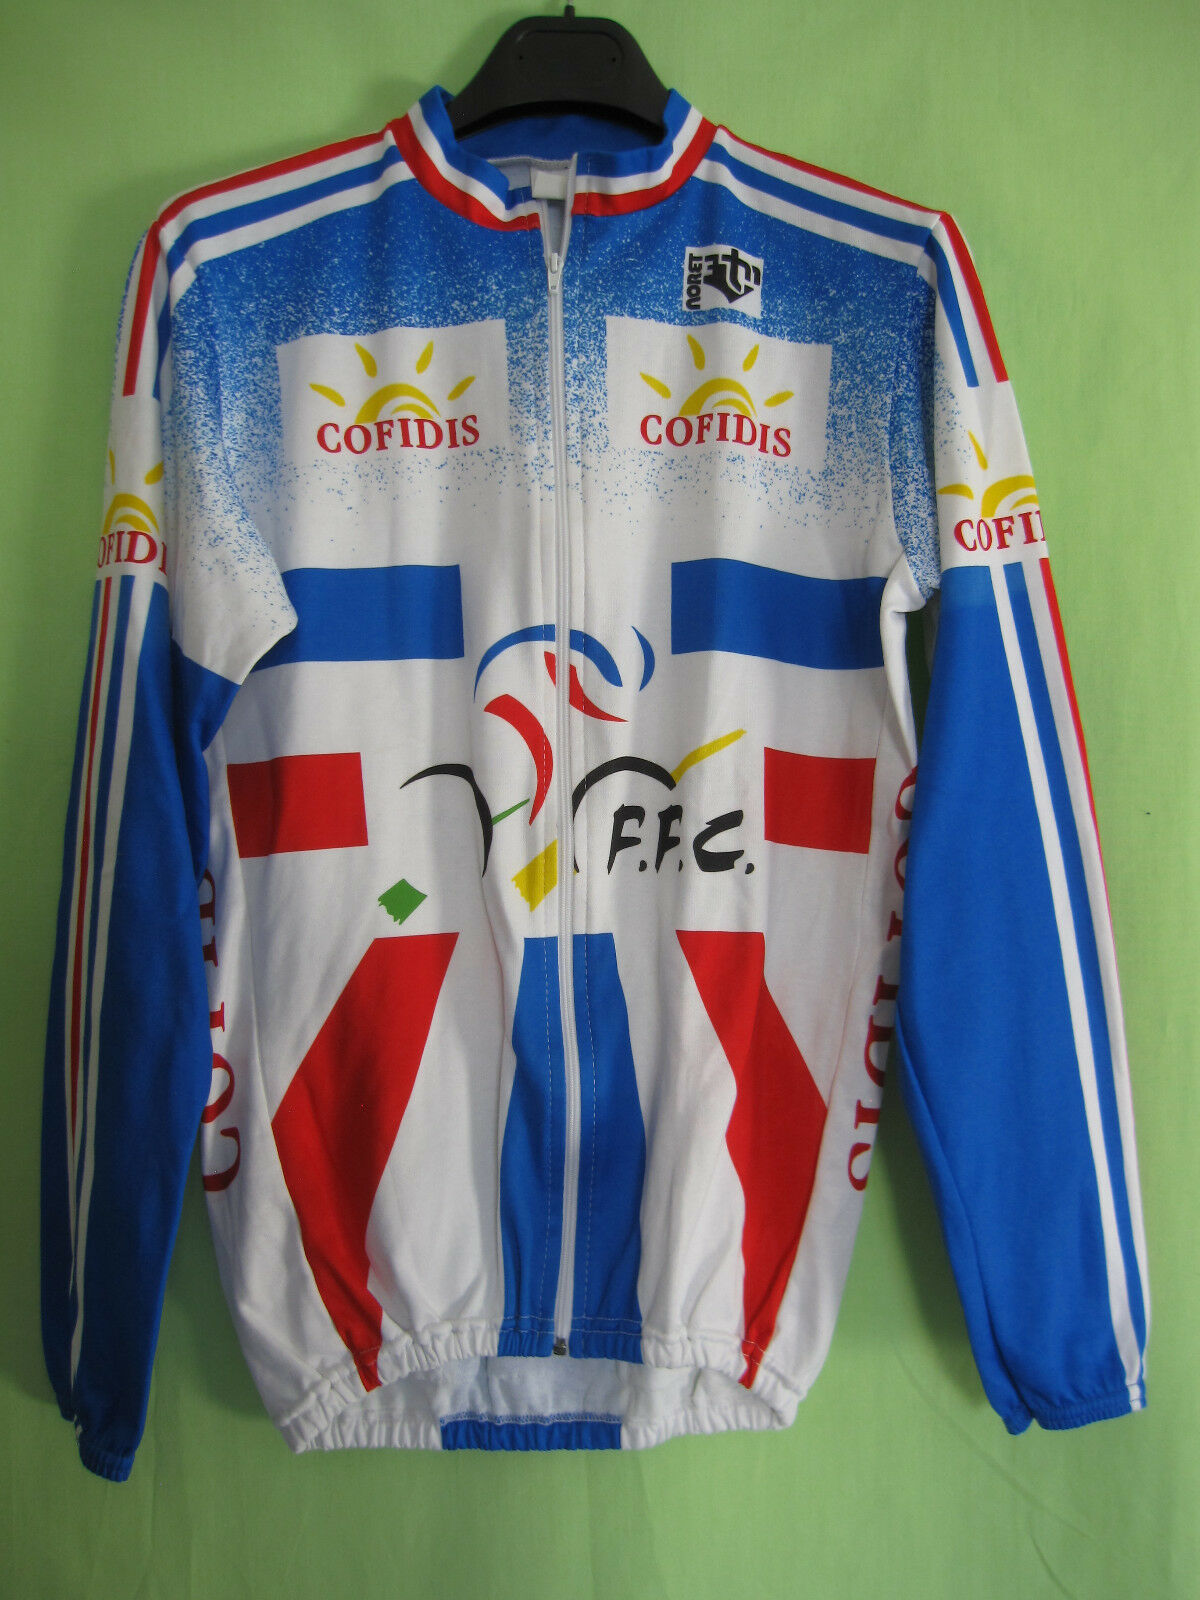 Maillot Cycliste Equipe France Noret Cofidis FFC vintage Cycles jersey - 3   M